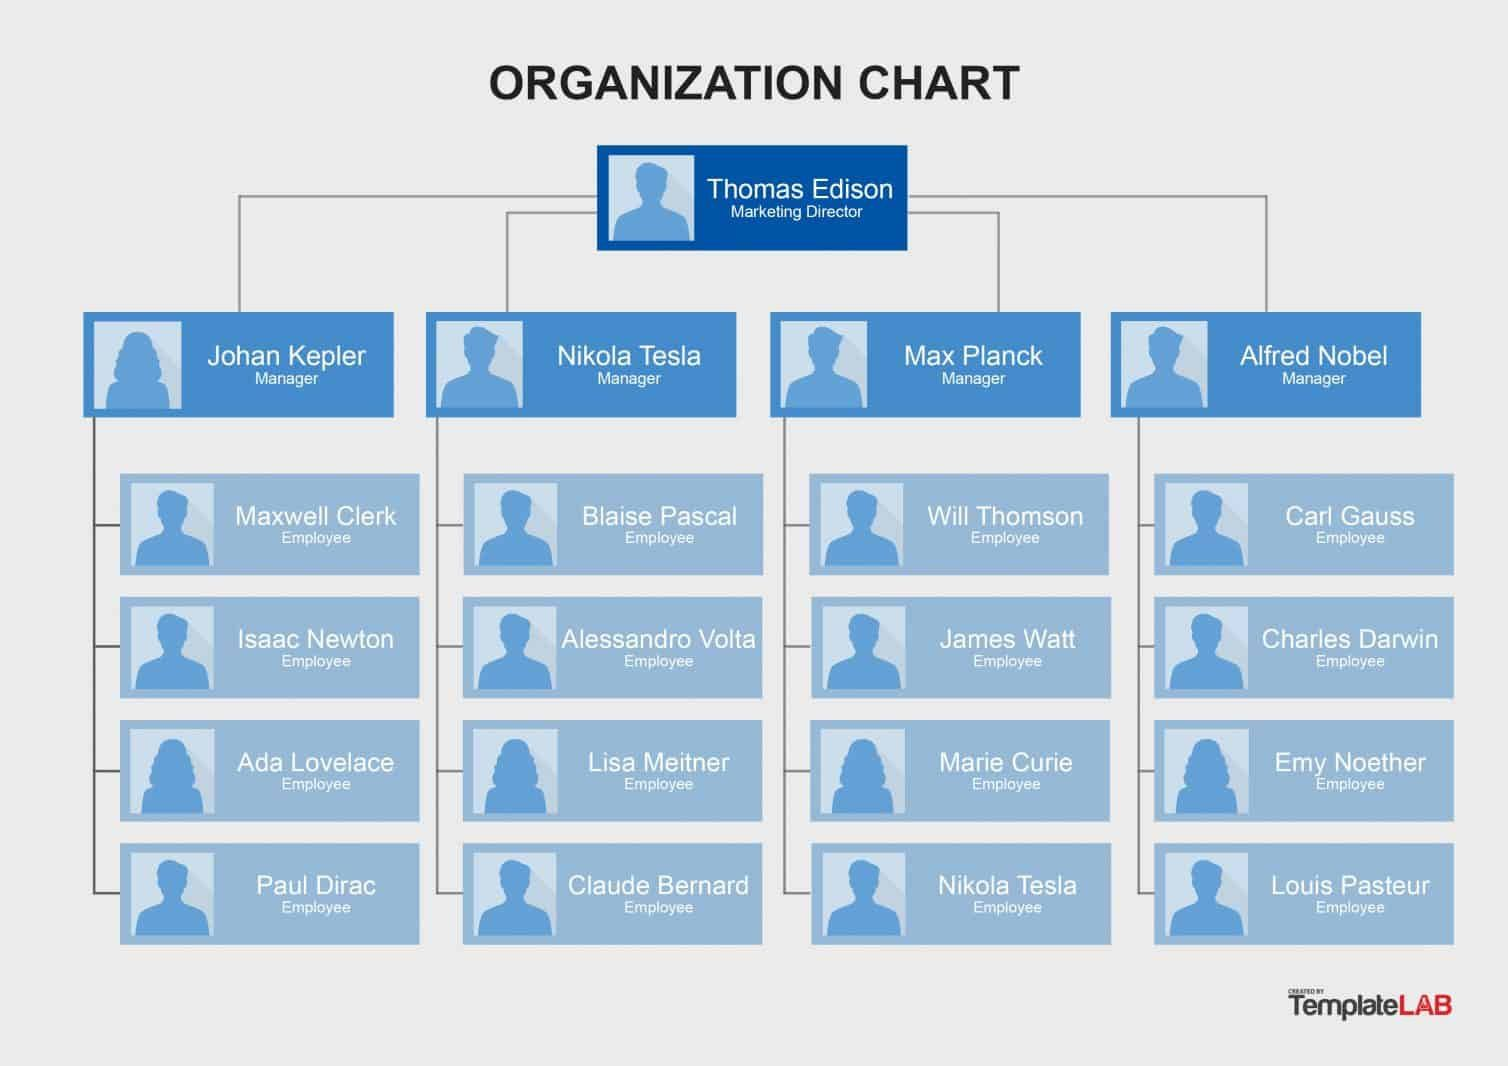 009 Rare Organizational Chart Template Excel Image  Organization Download OrgFull